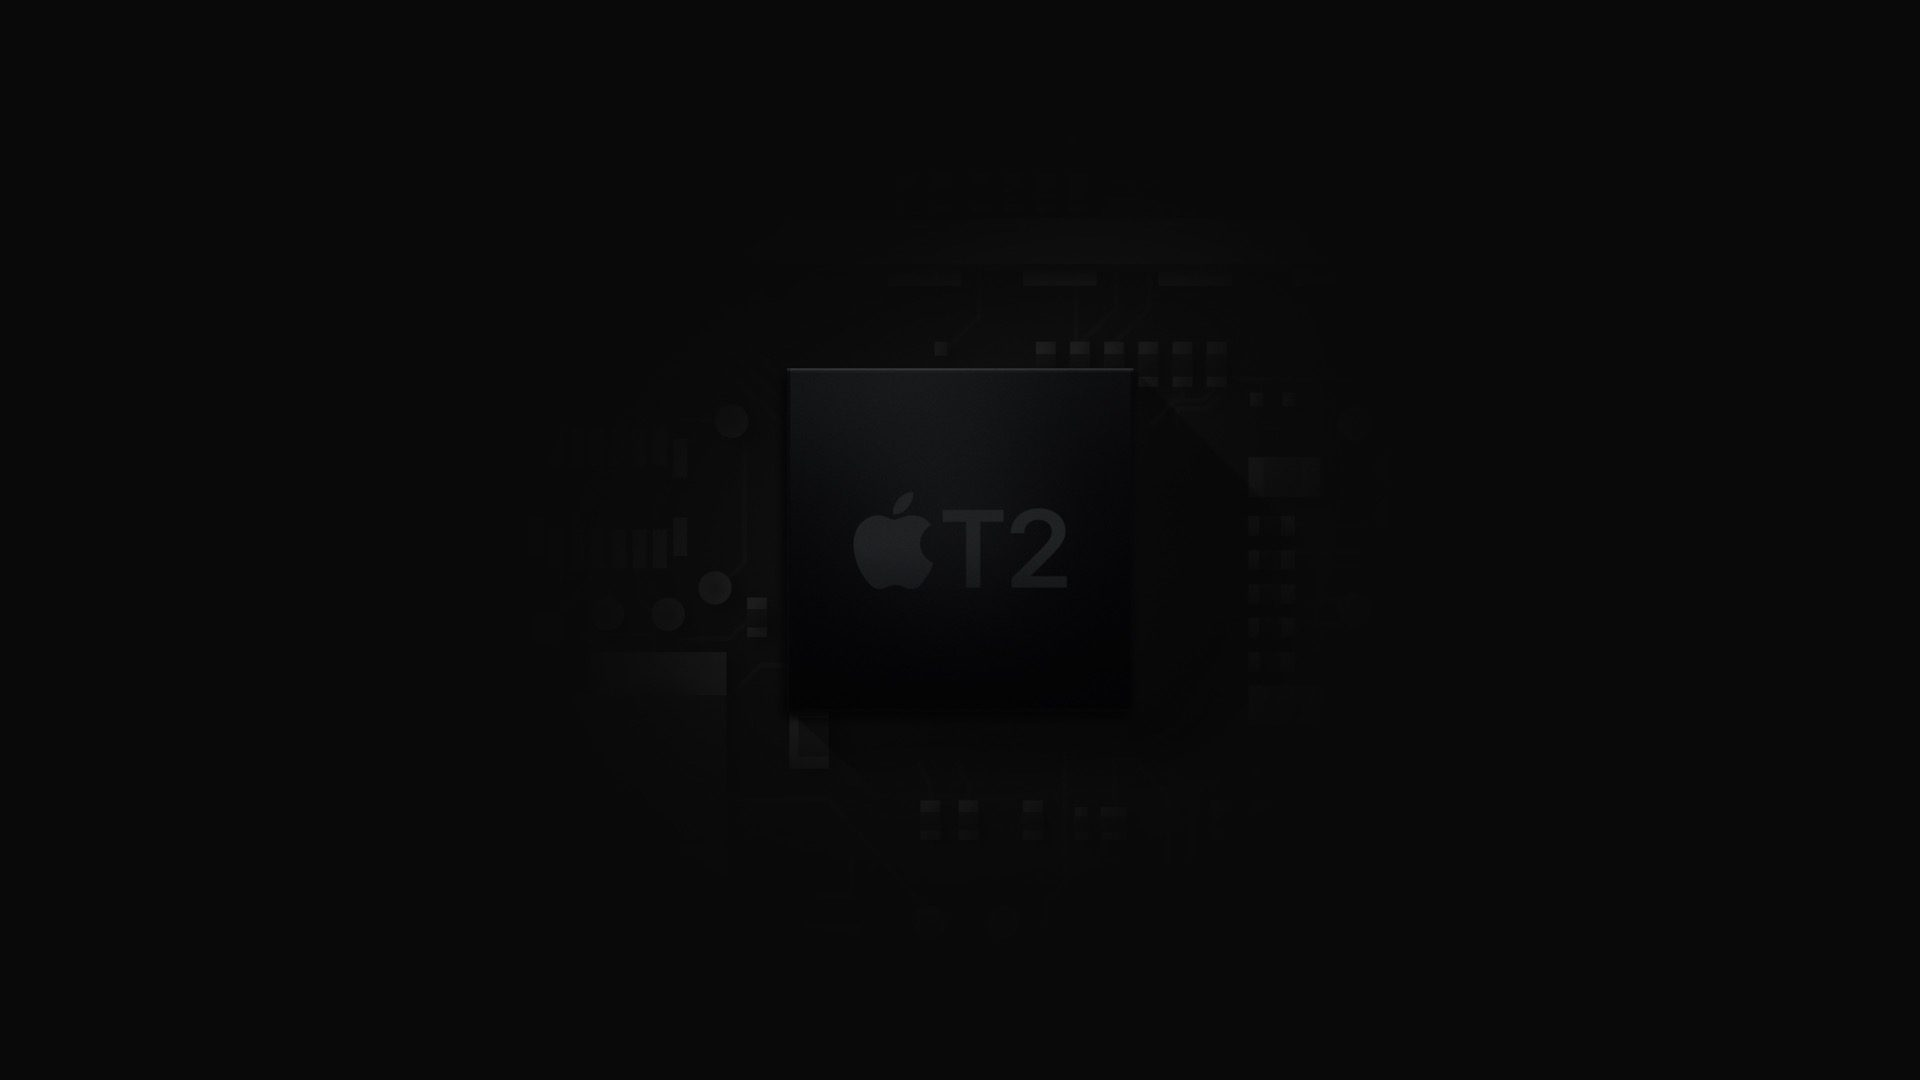 2018-macbook-pro-t2-chip.jpg